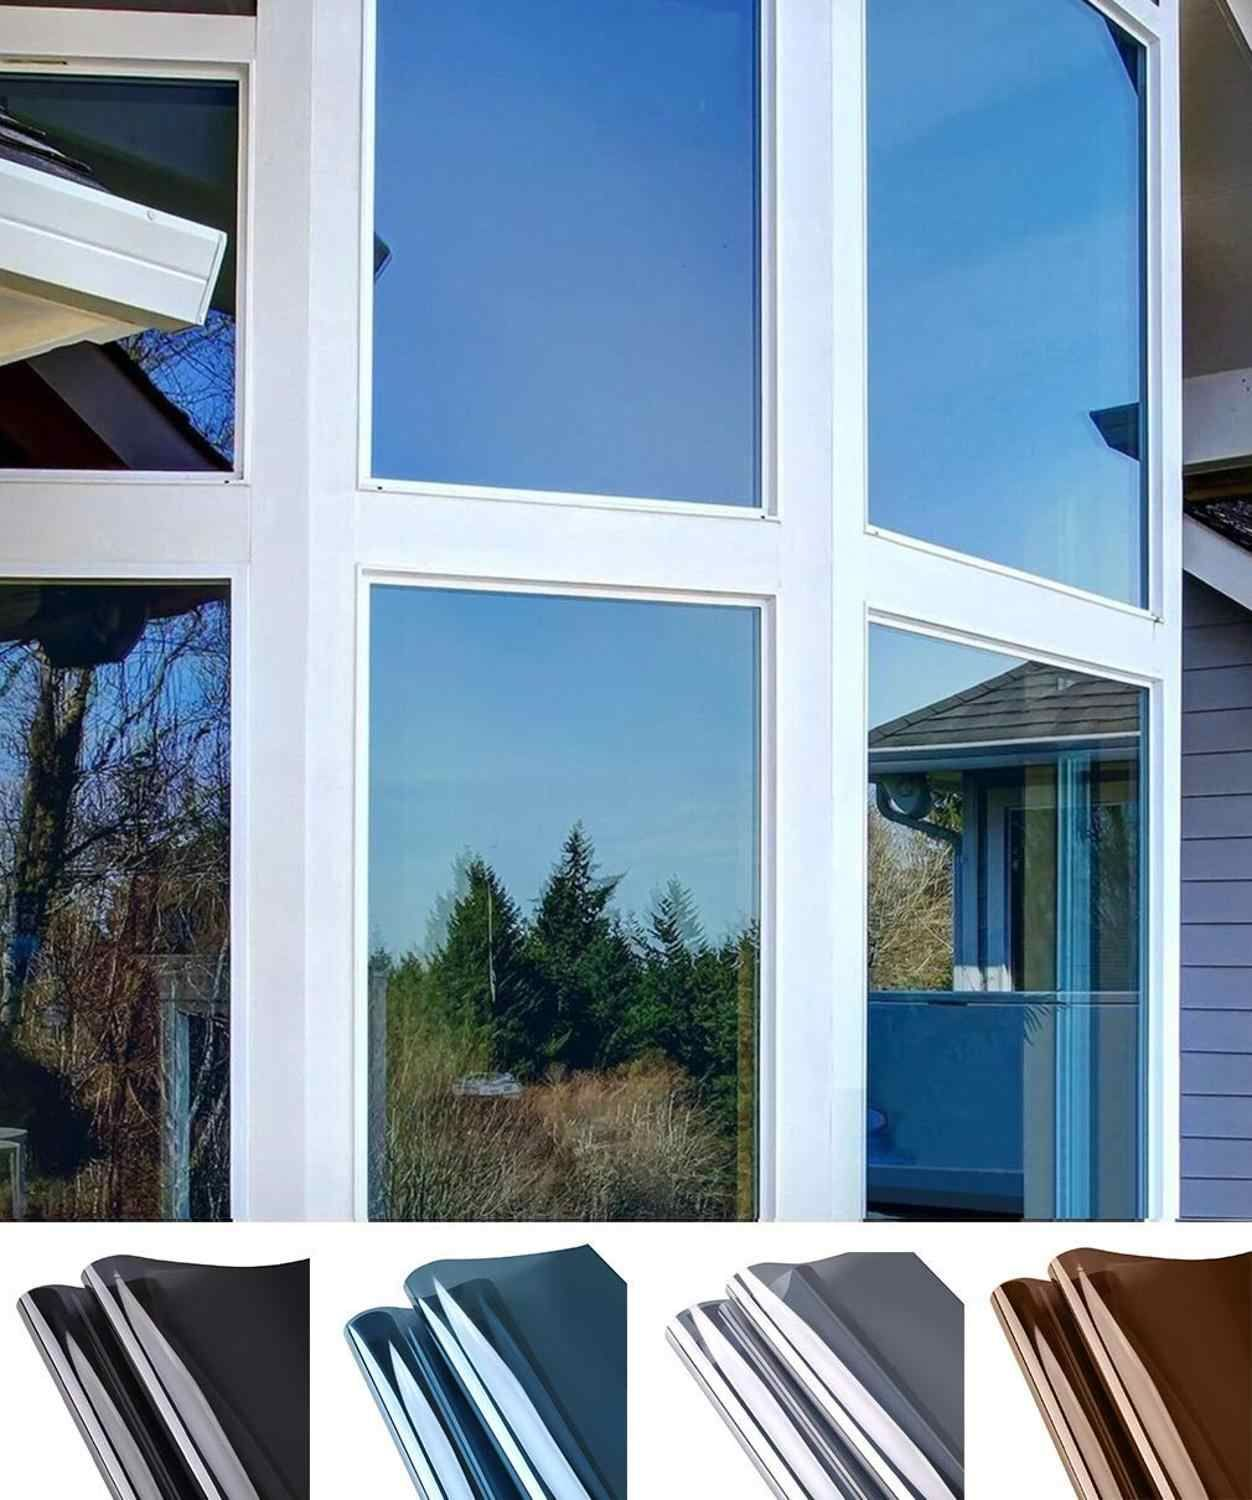 Window Privacy Film Sun Blocking Mirror Reflective Tint One Way Heat Control Vinyl Anti Uv Window Stickers For Home And Office Aliexpress In 2020 Window Film Privacy Window Privacy Mirrors Film